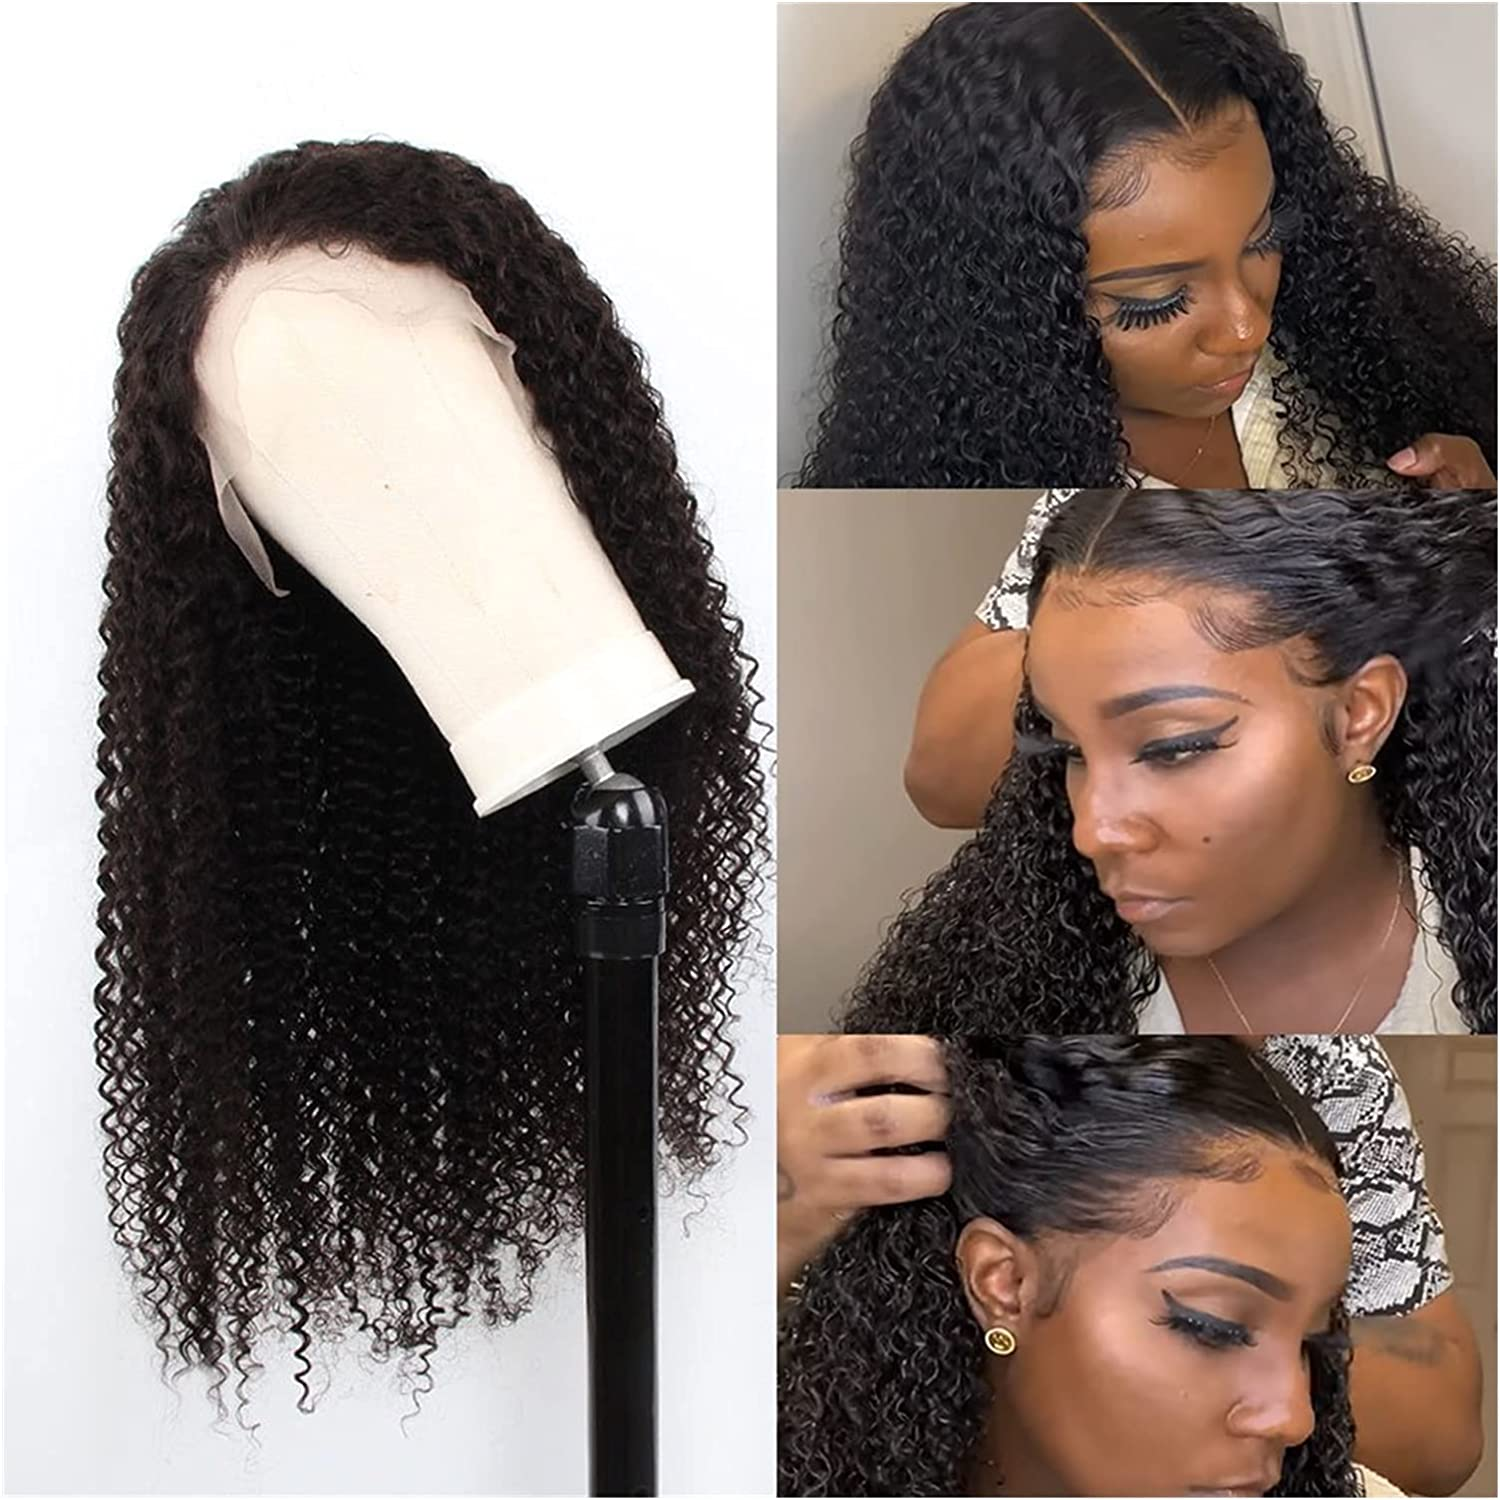 Wig Curly Wigs Sales of SALE items from new works for Women Lace Human Hair Year-end gift Closure